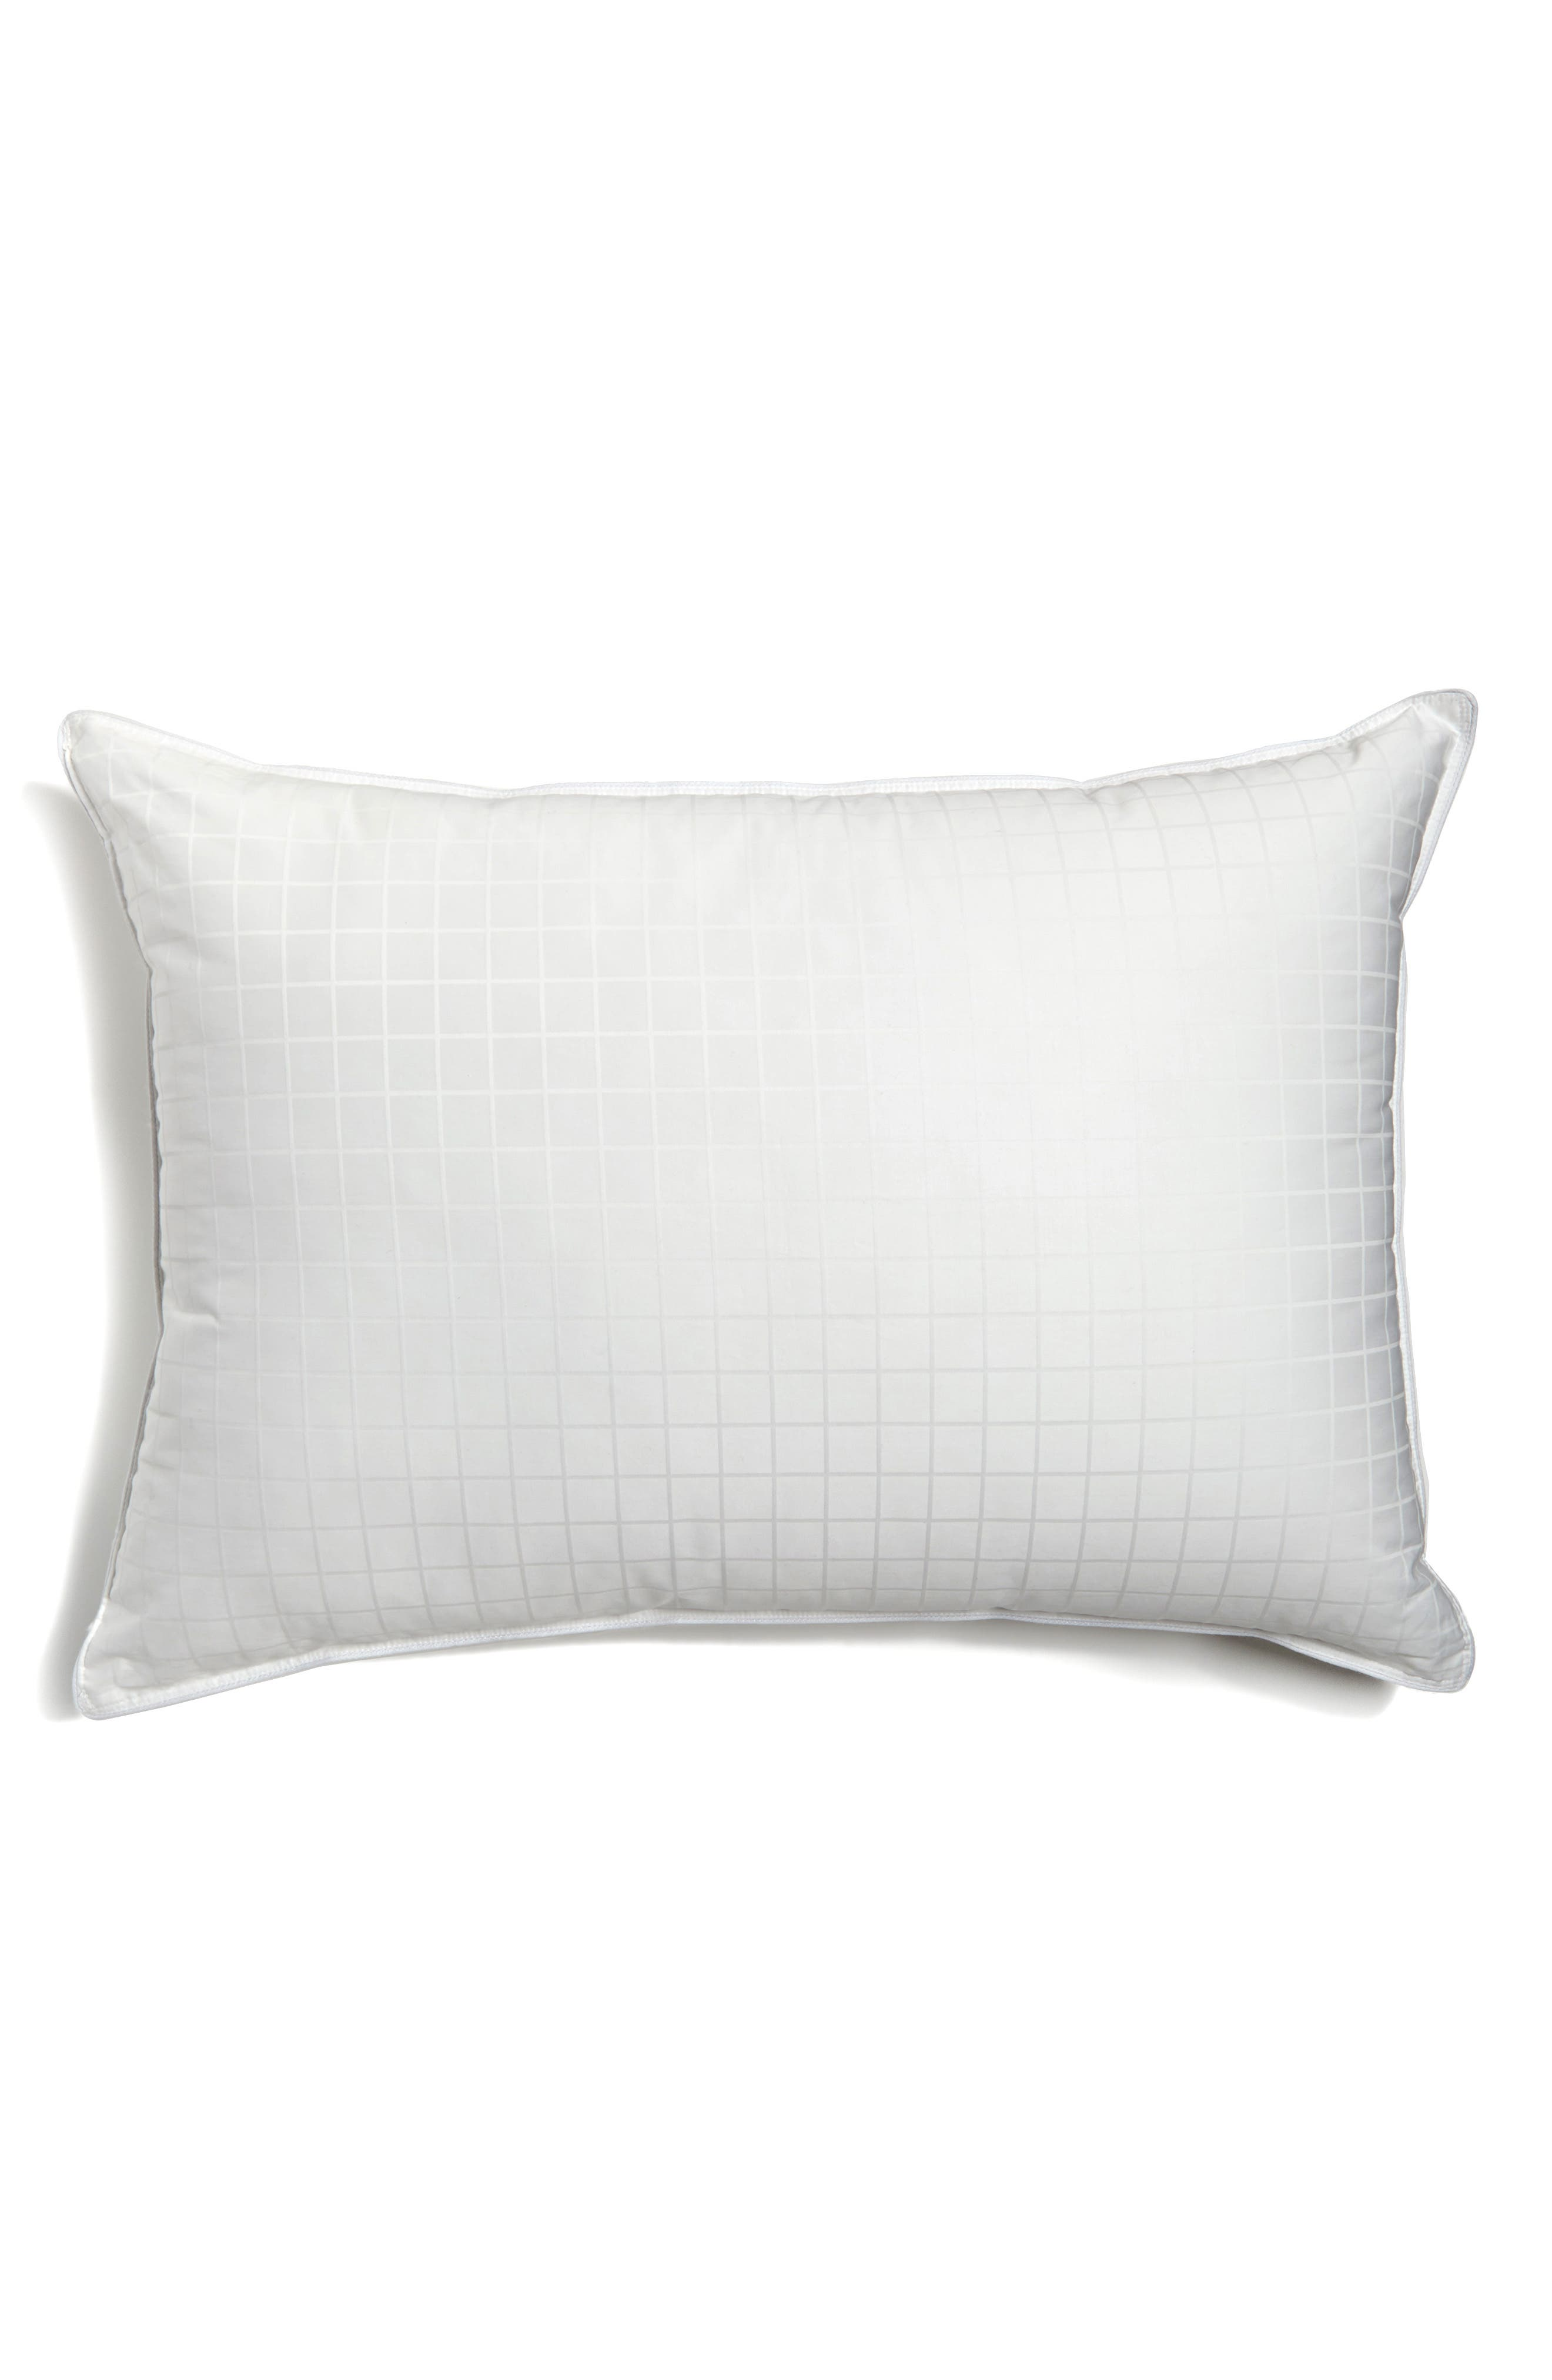 Luxe Down & Feather Pillow,                         Main,                         color, WHITE